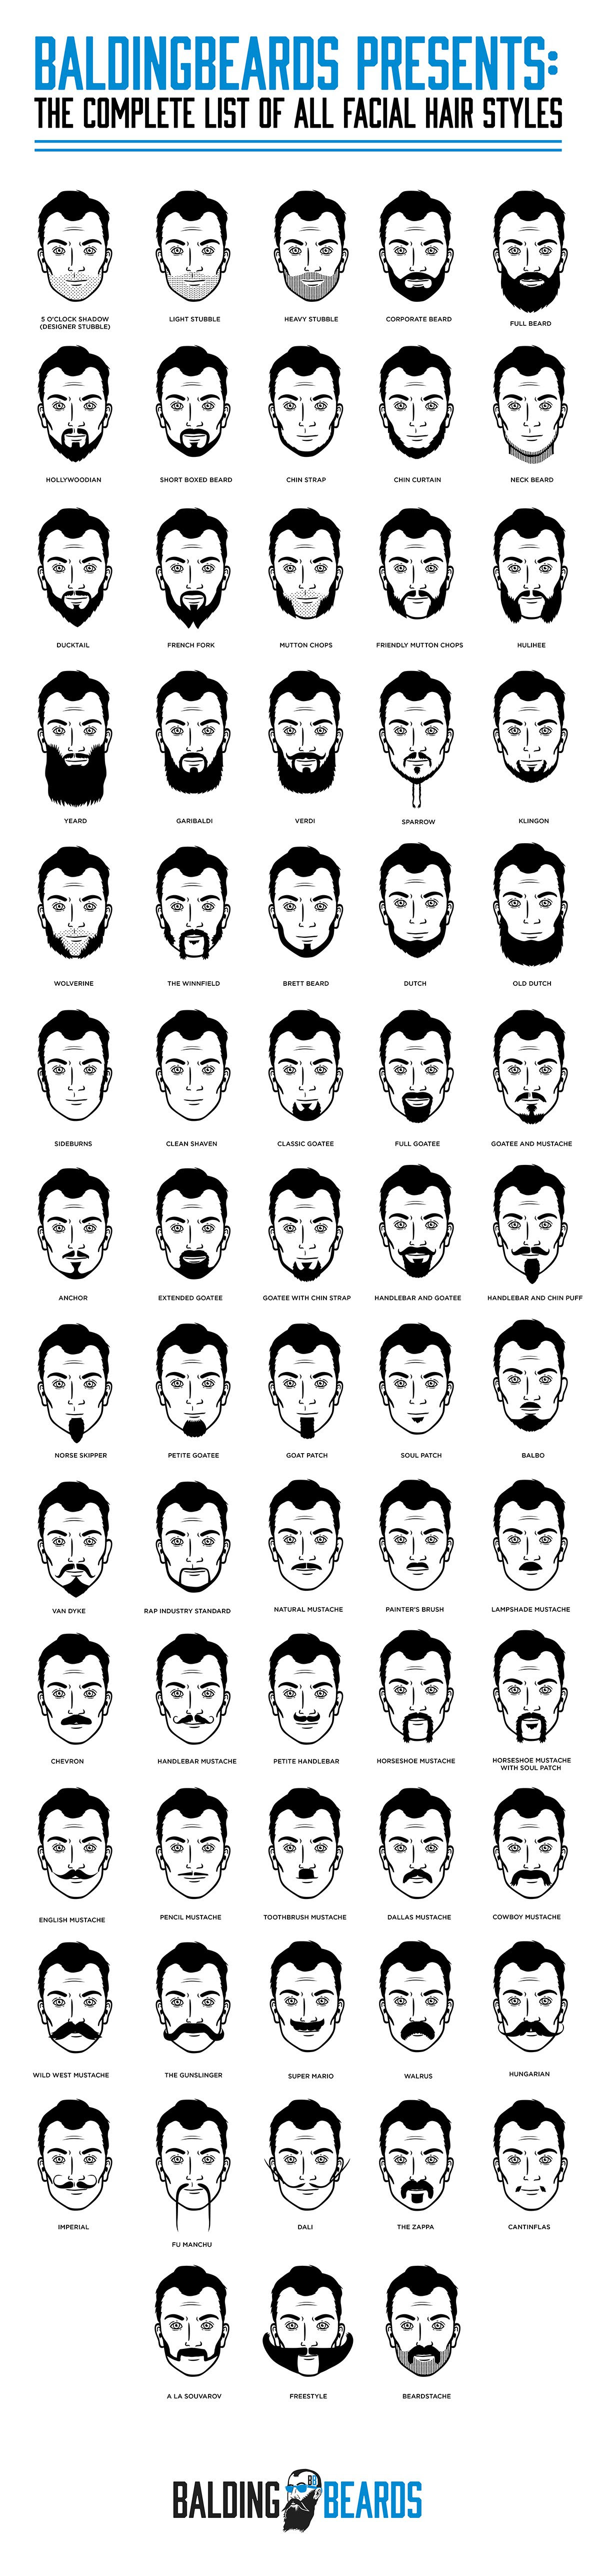 The Complete List Of All Facial Hair Styles